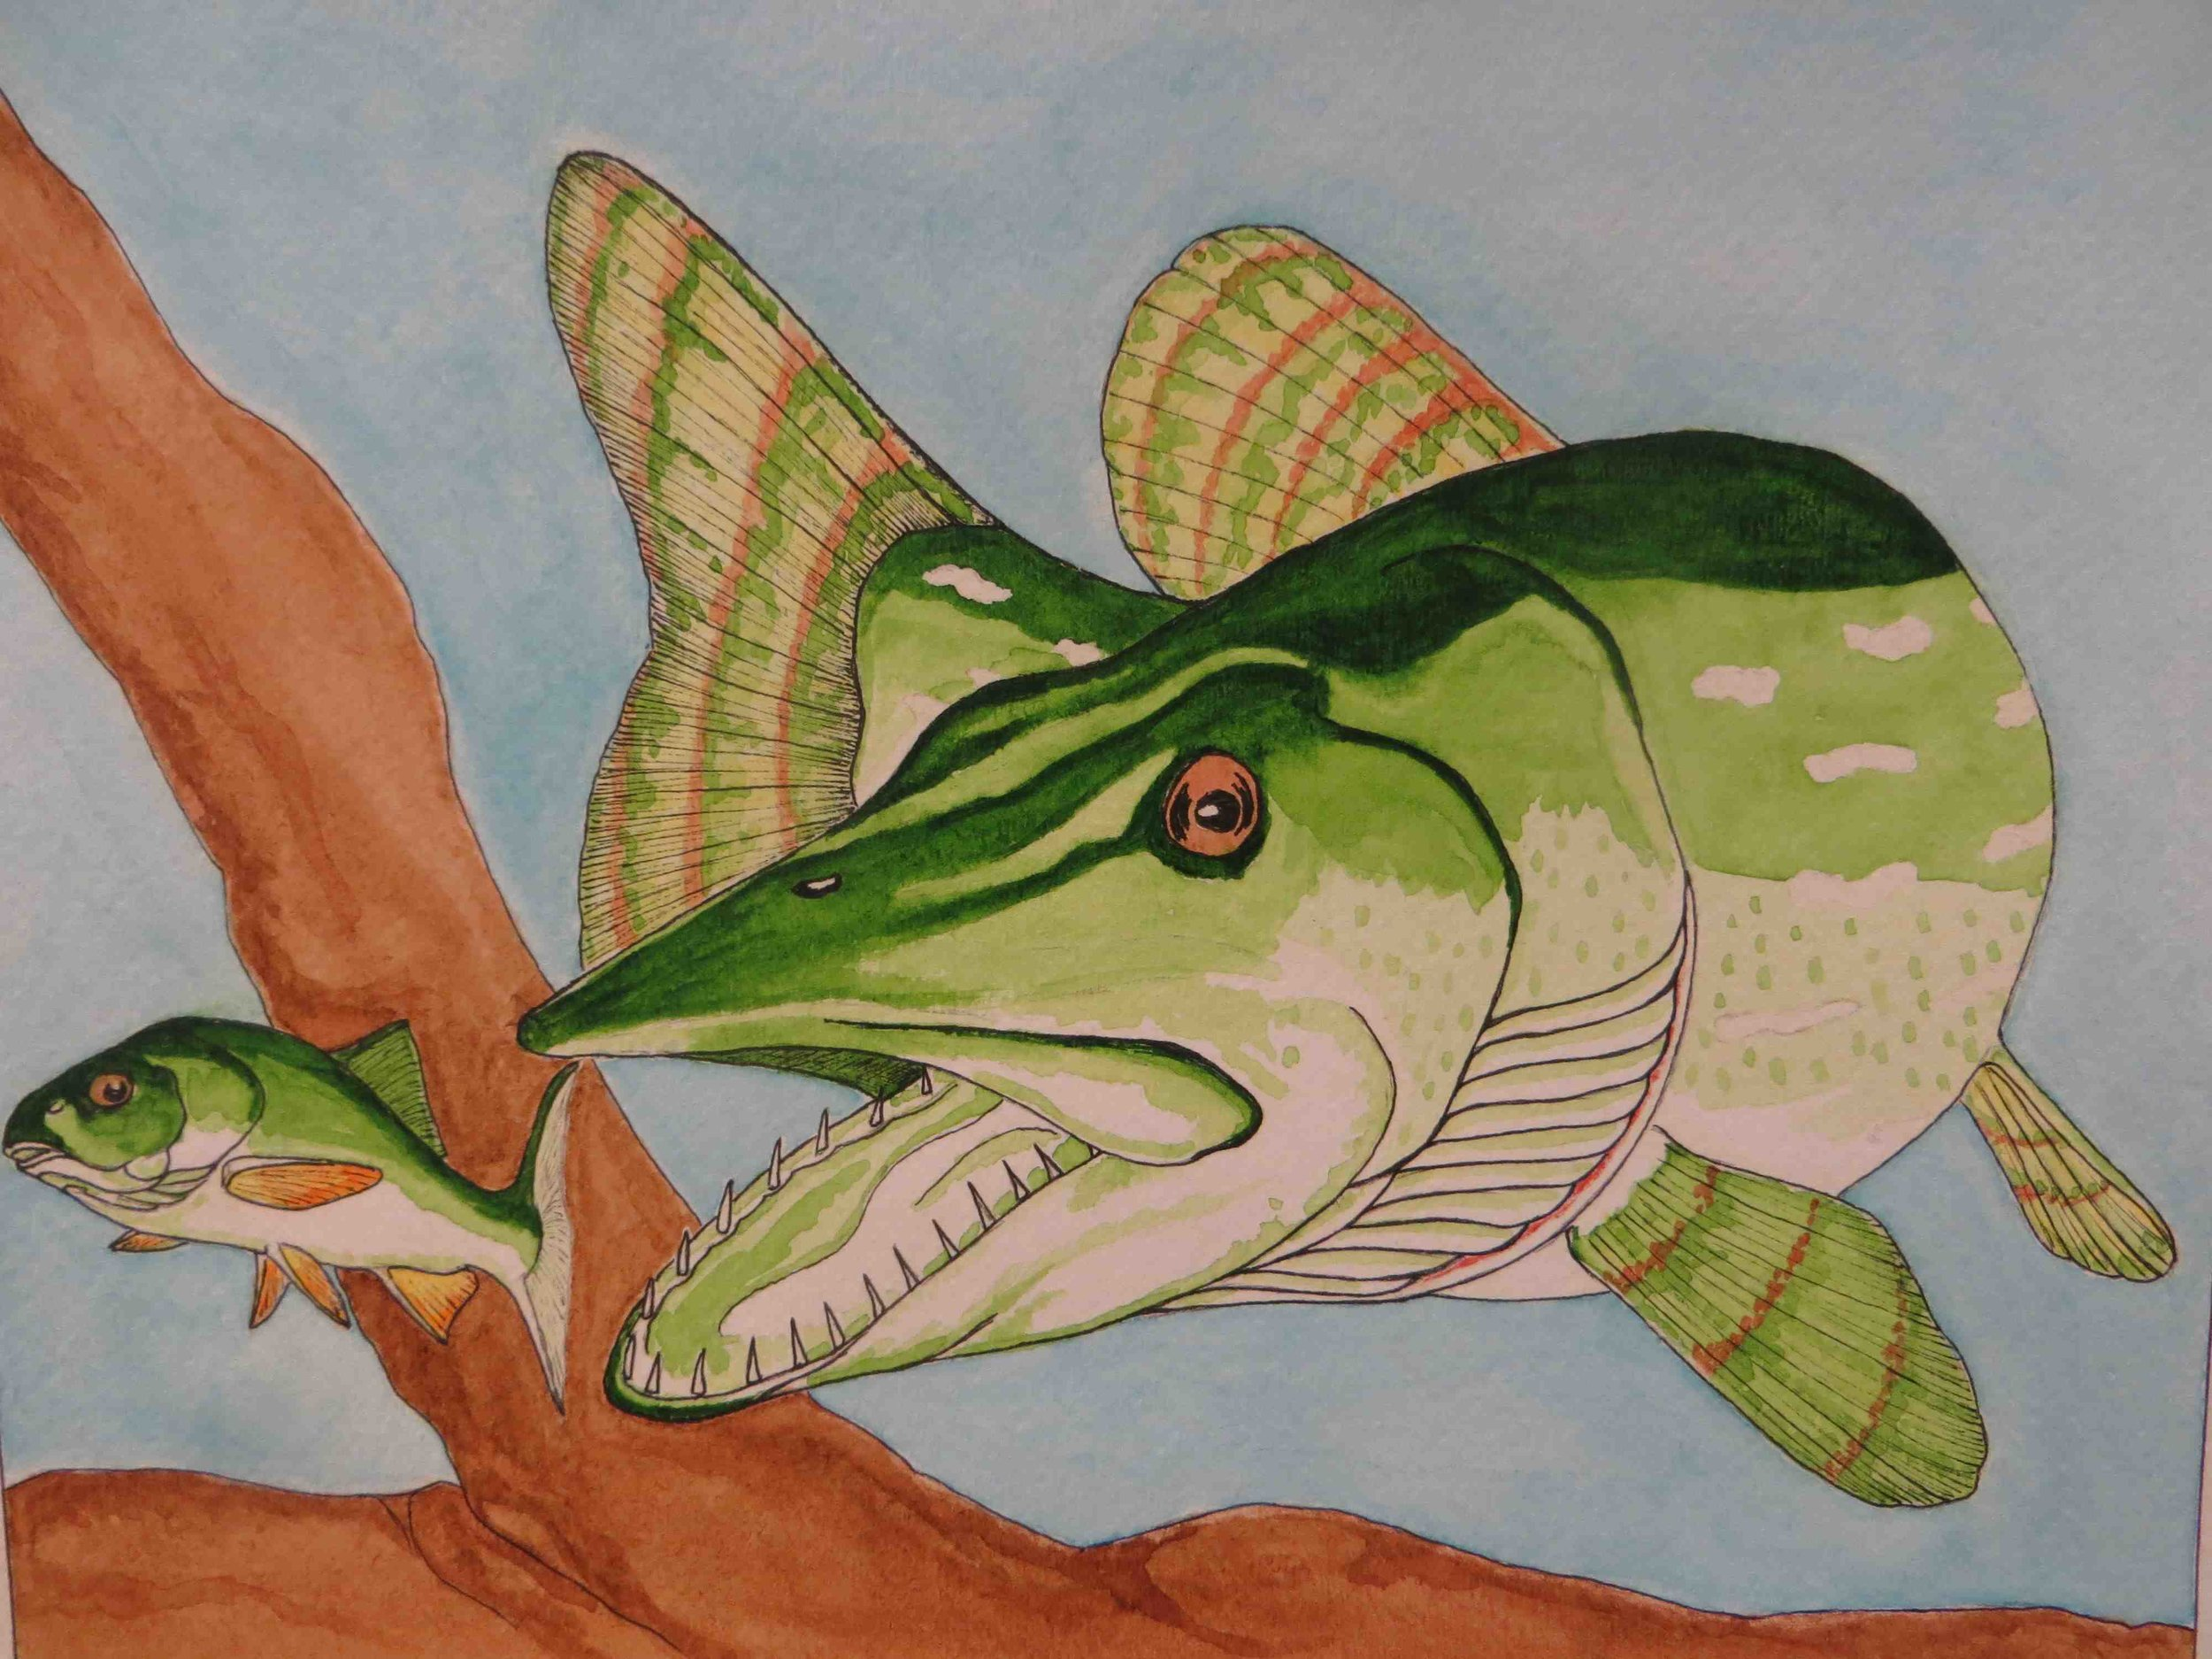 Fish artwork by Douglas Dworak at San Quentin.jpg